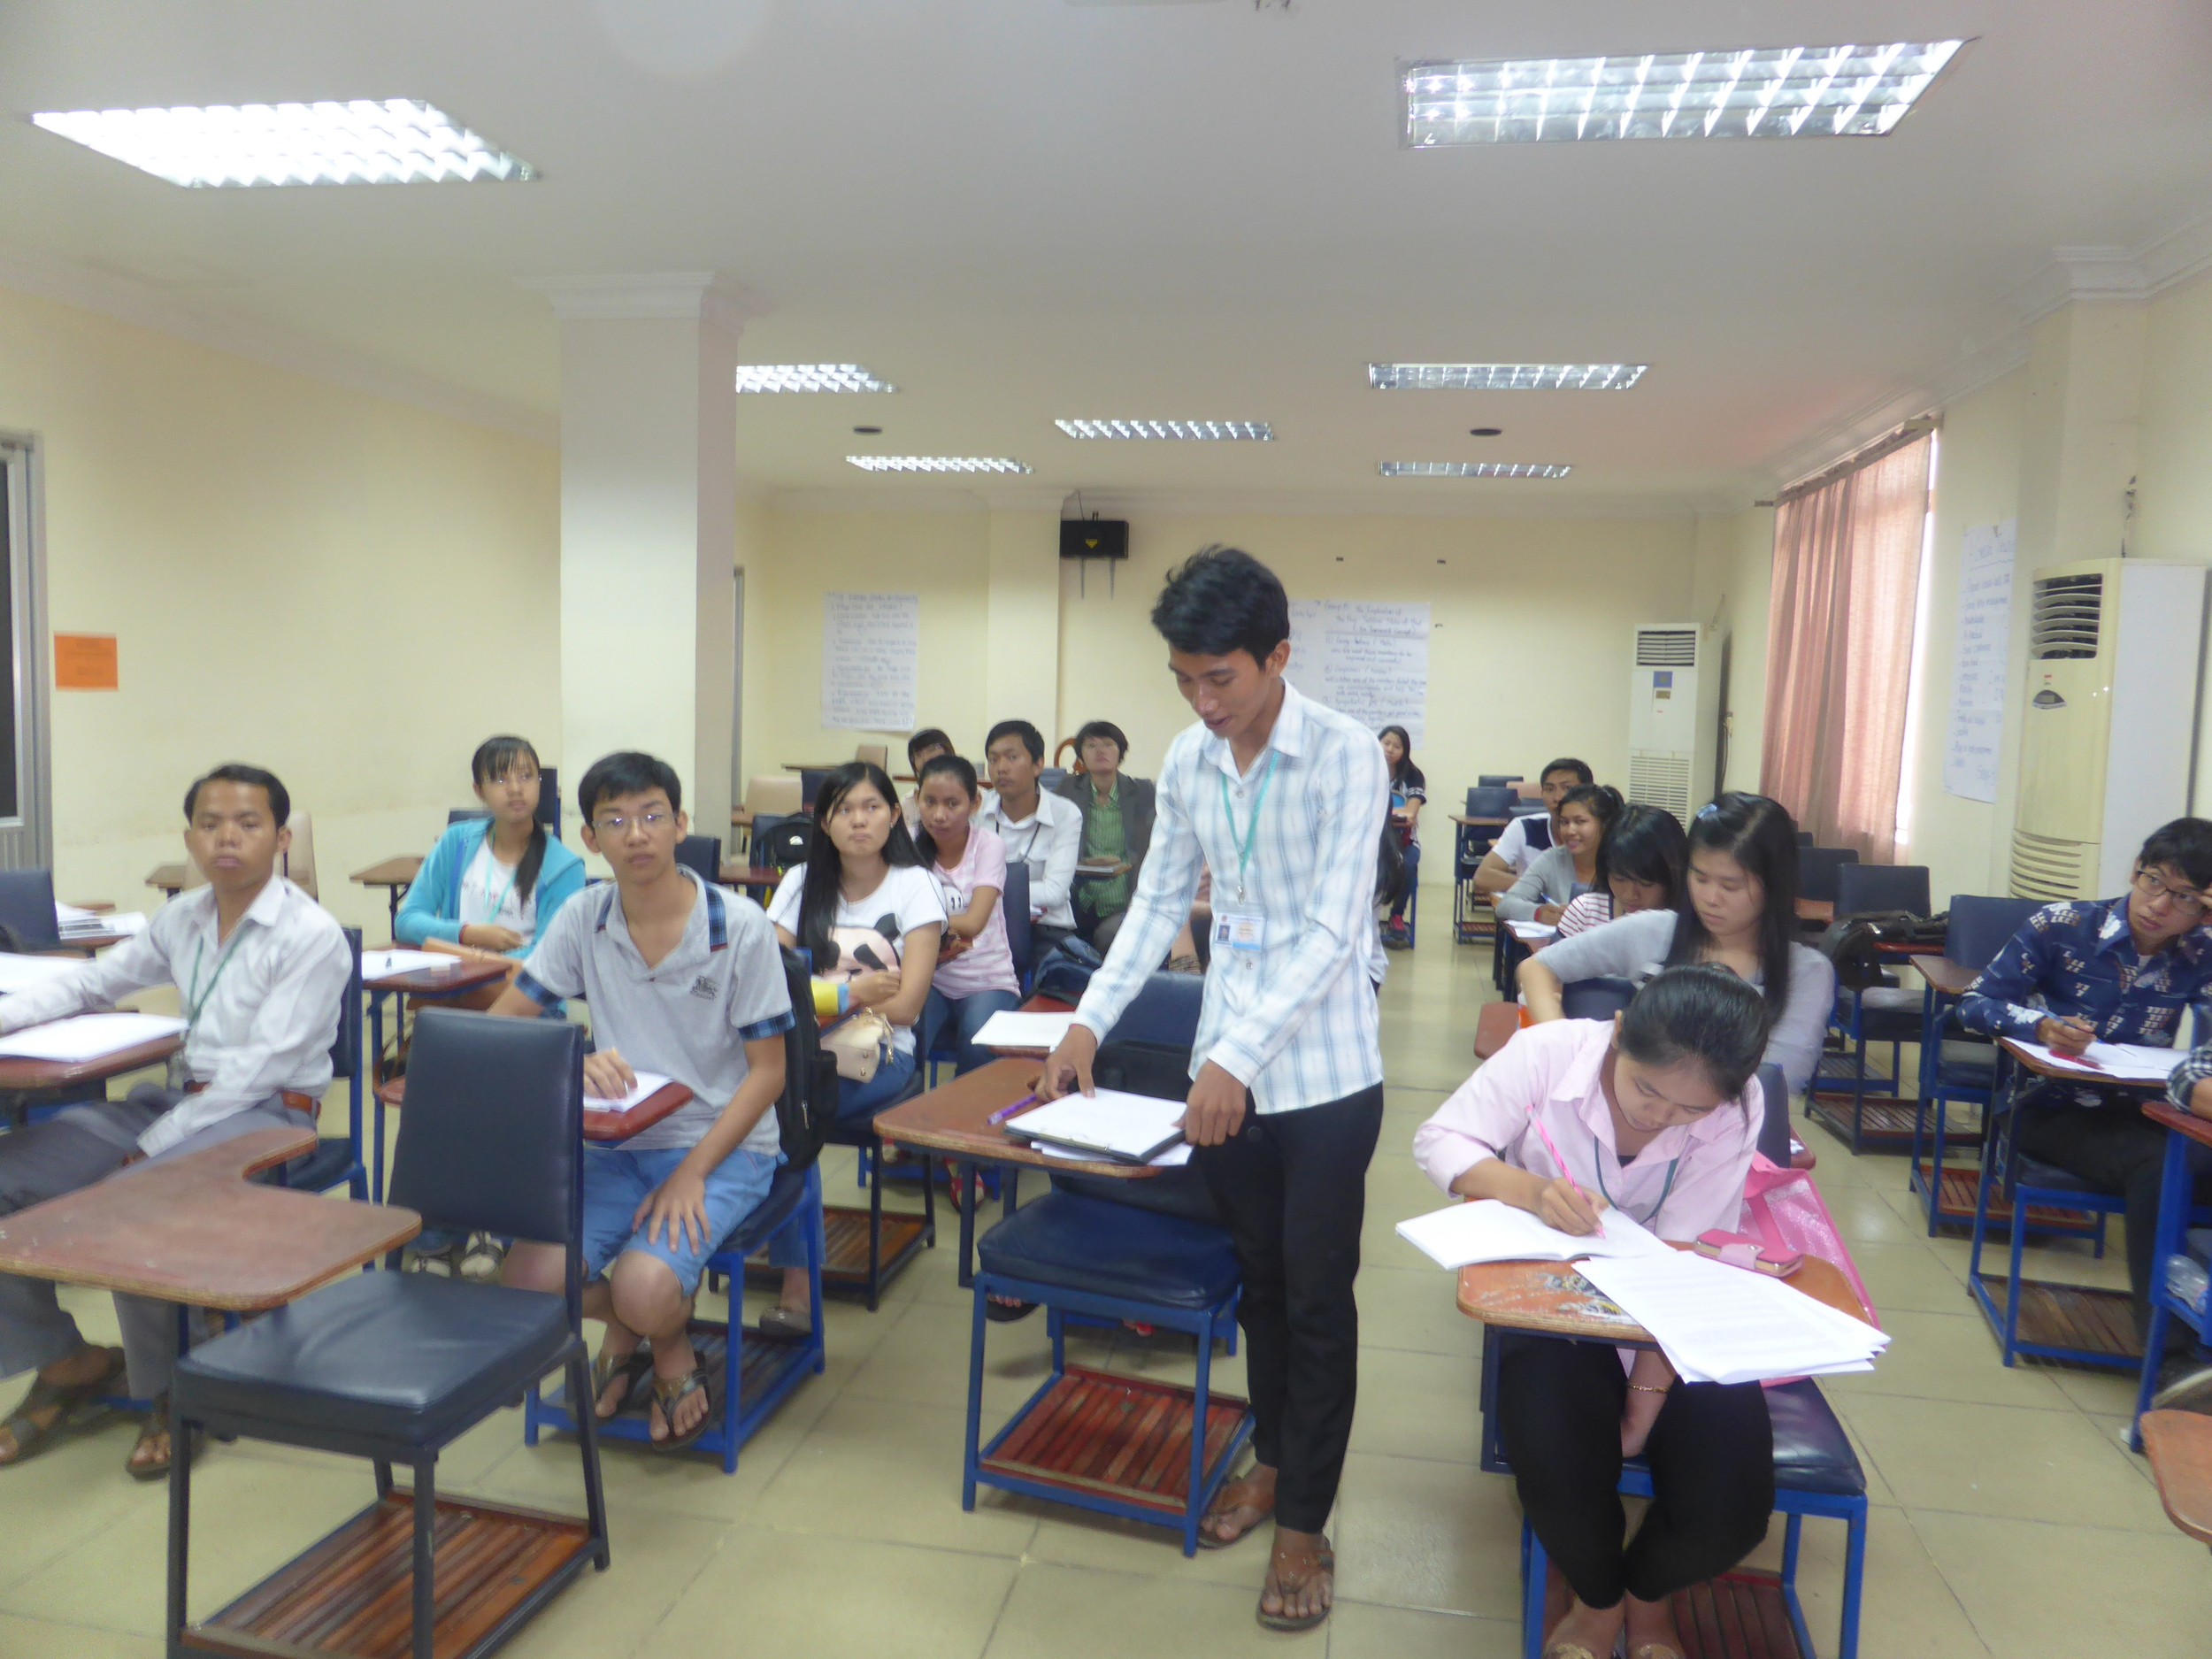 A student shares his personal reflection on the issue of domestic violence in Cambodia.